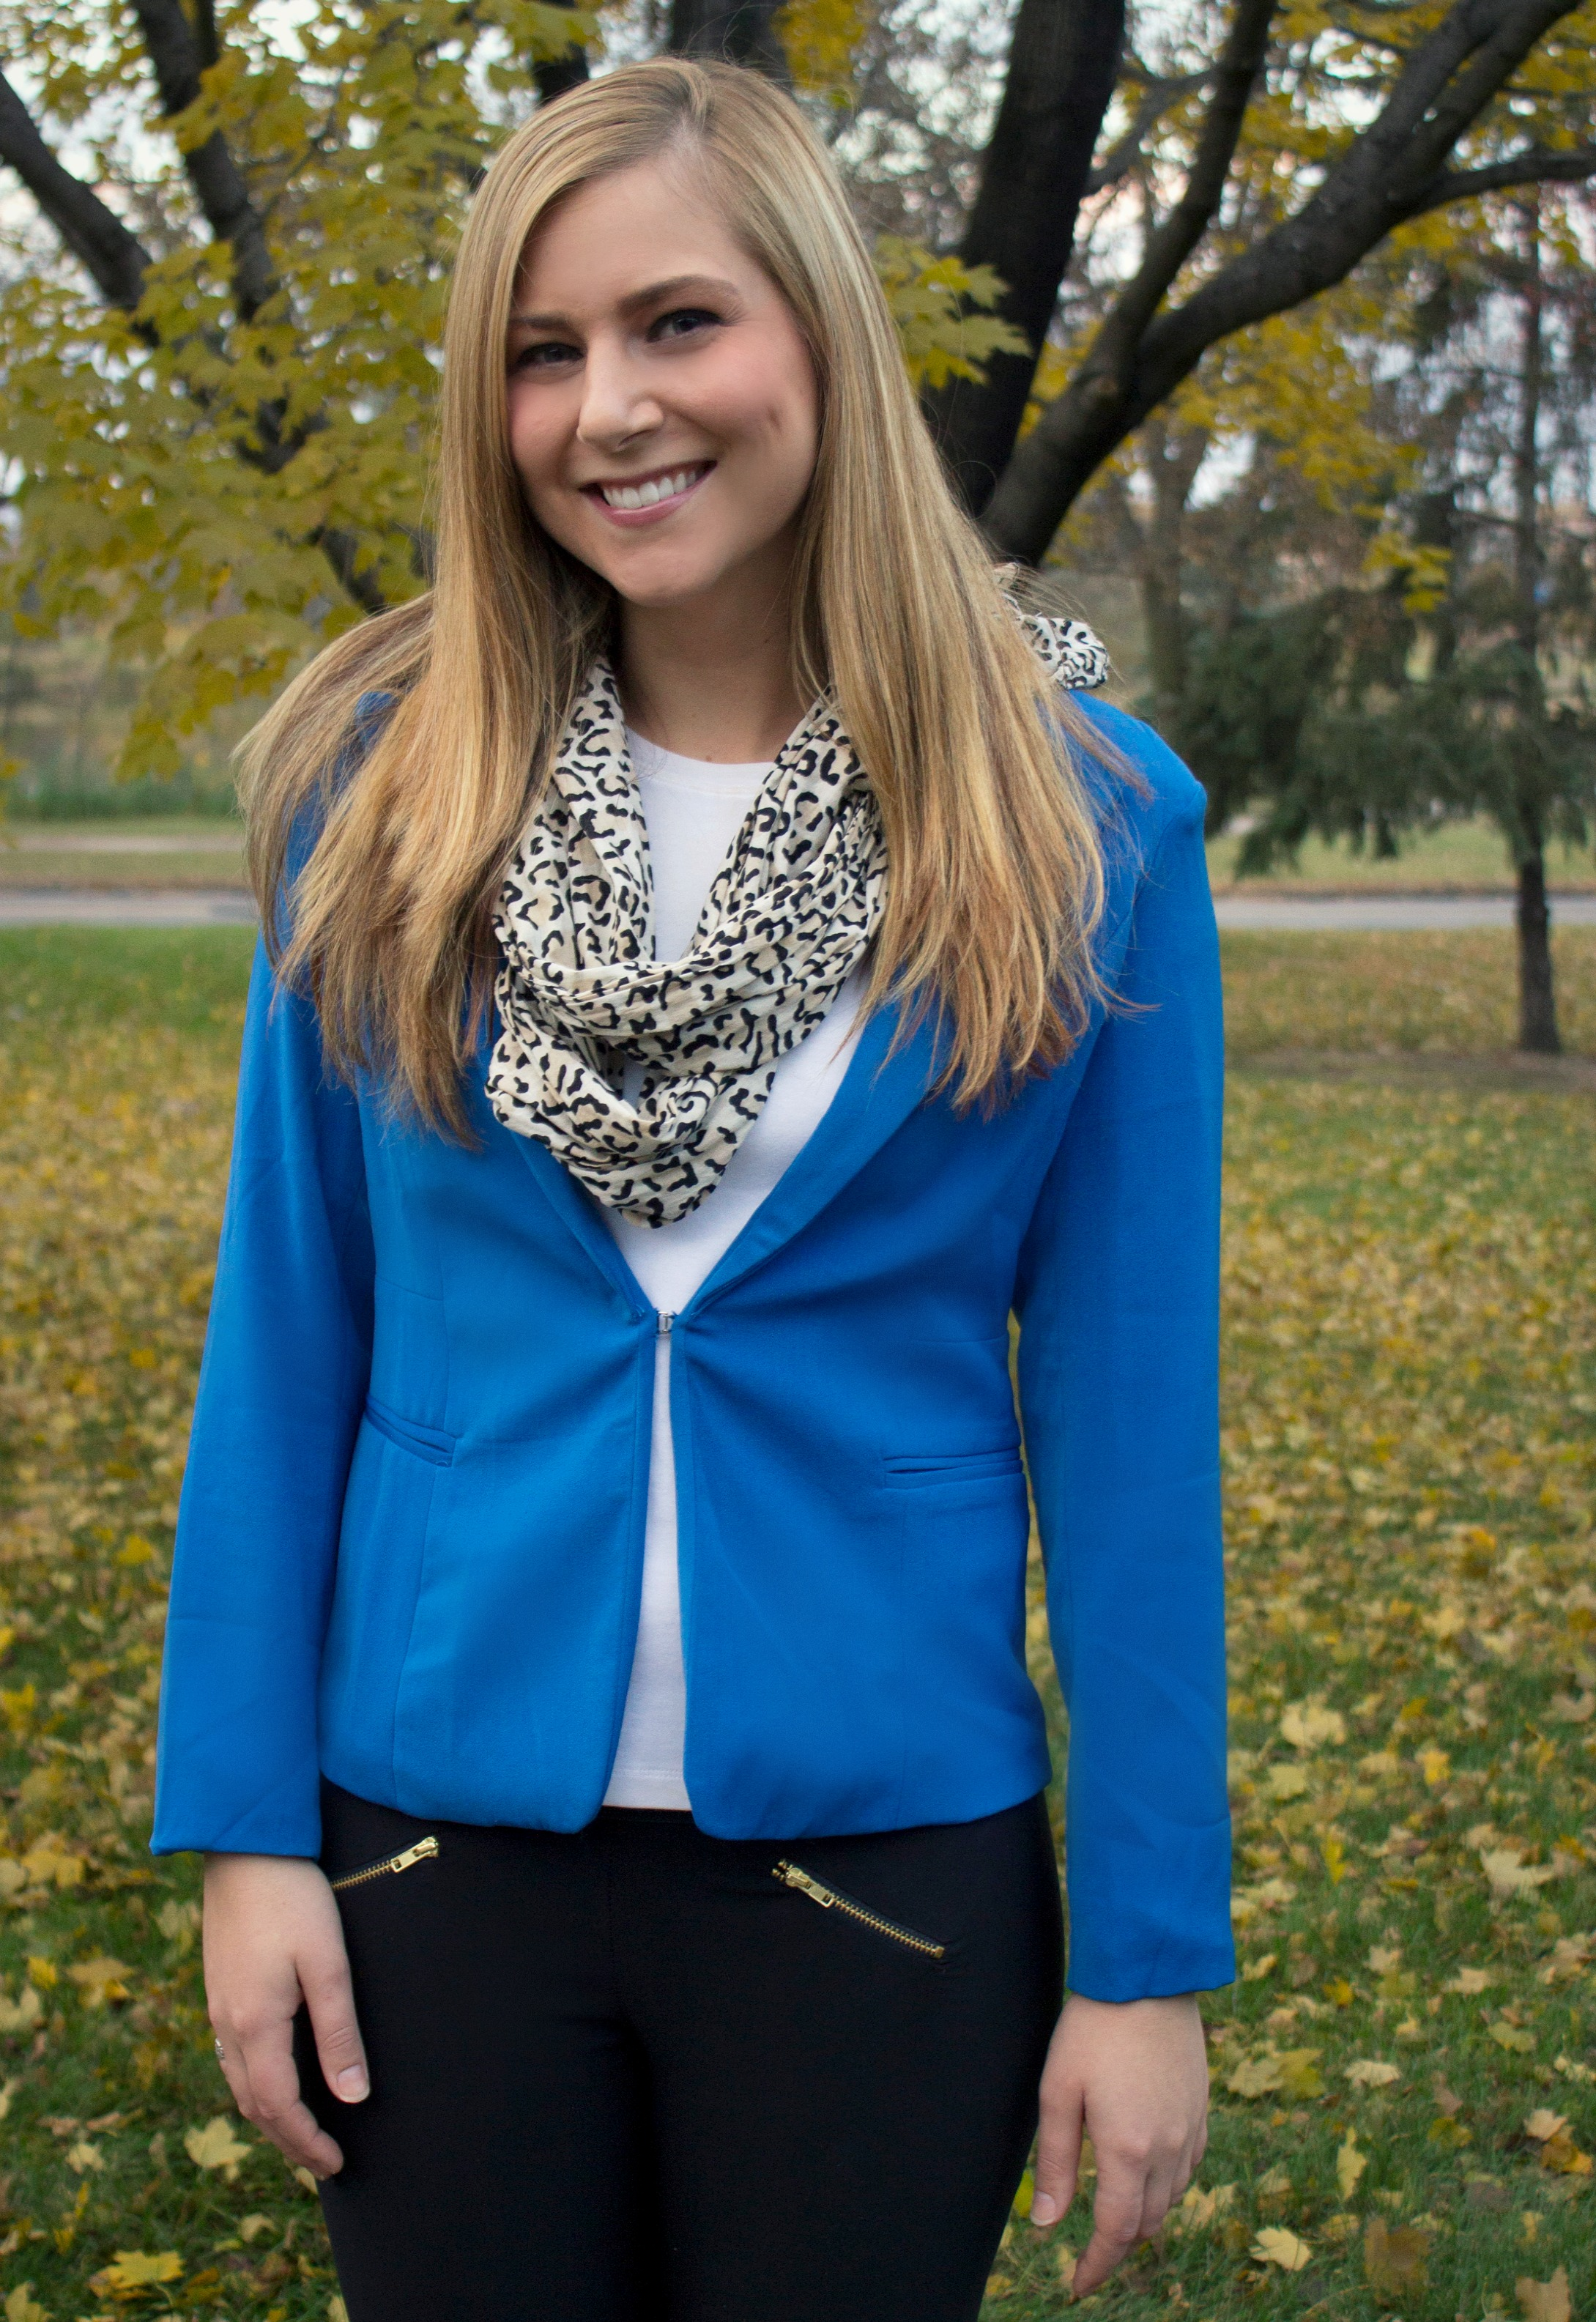 Leggings + Blue Blazer